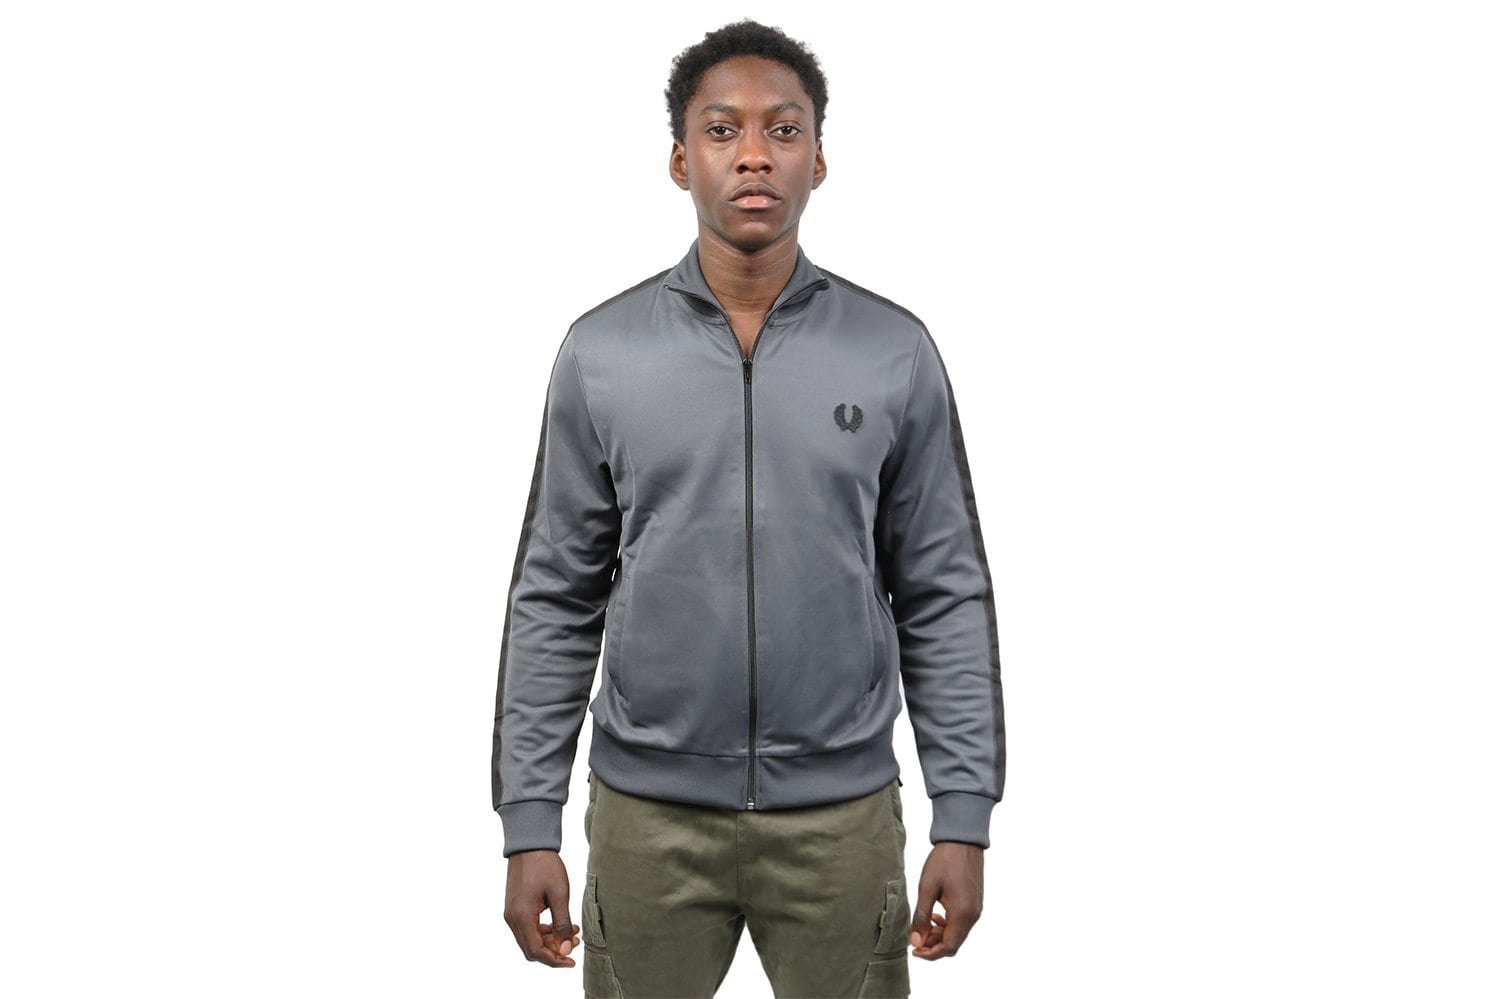 TONAL TAPED TRACK JACKET- J3524 MENS FRED PERRY NRML GREY